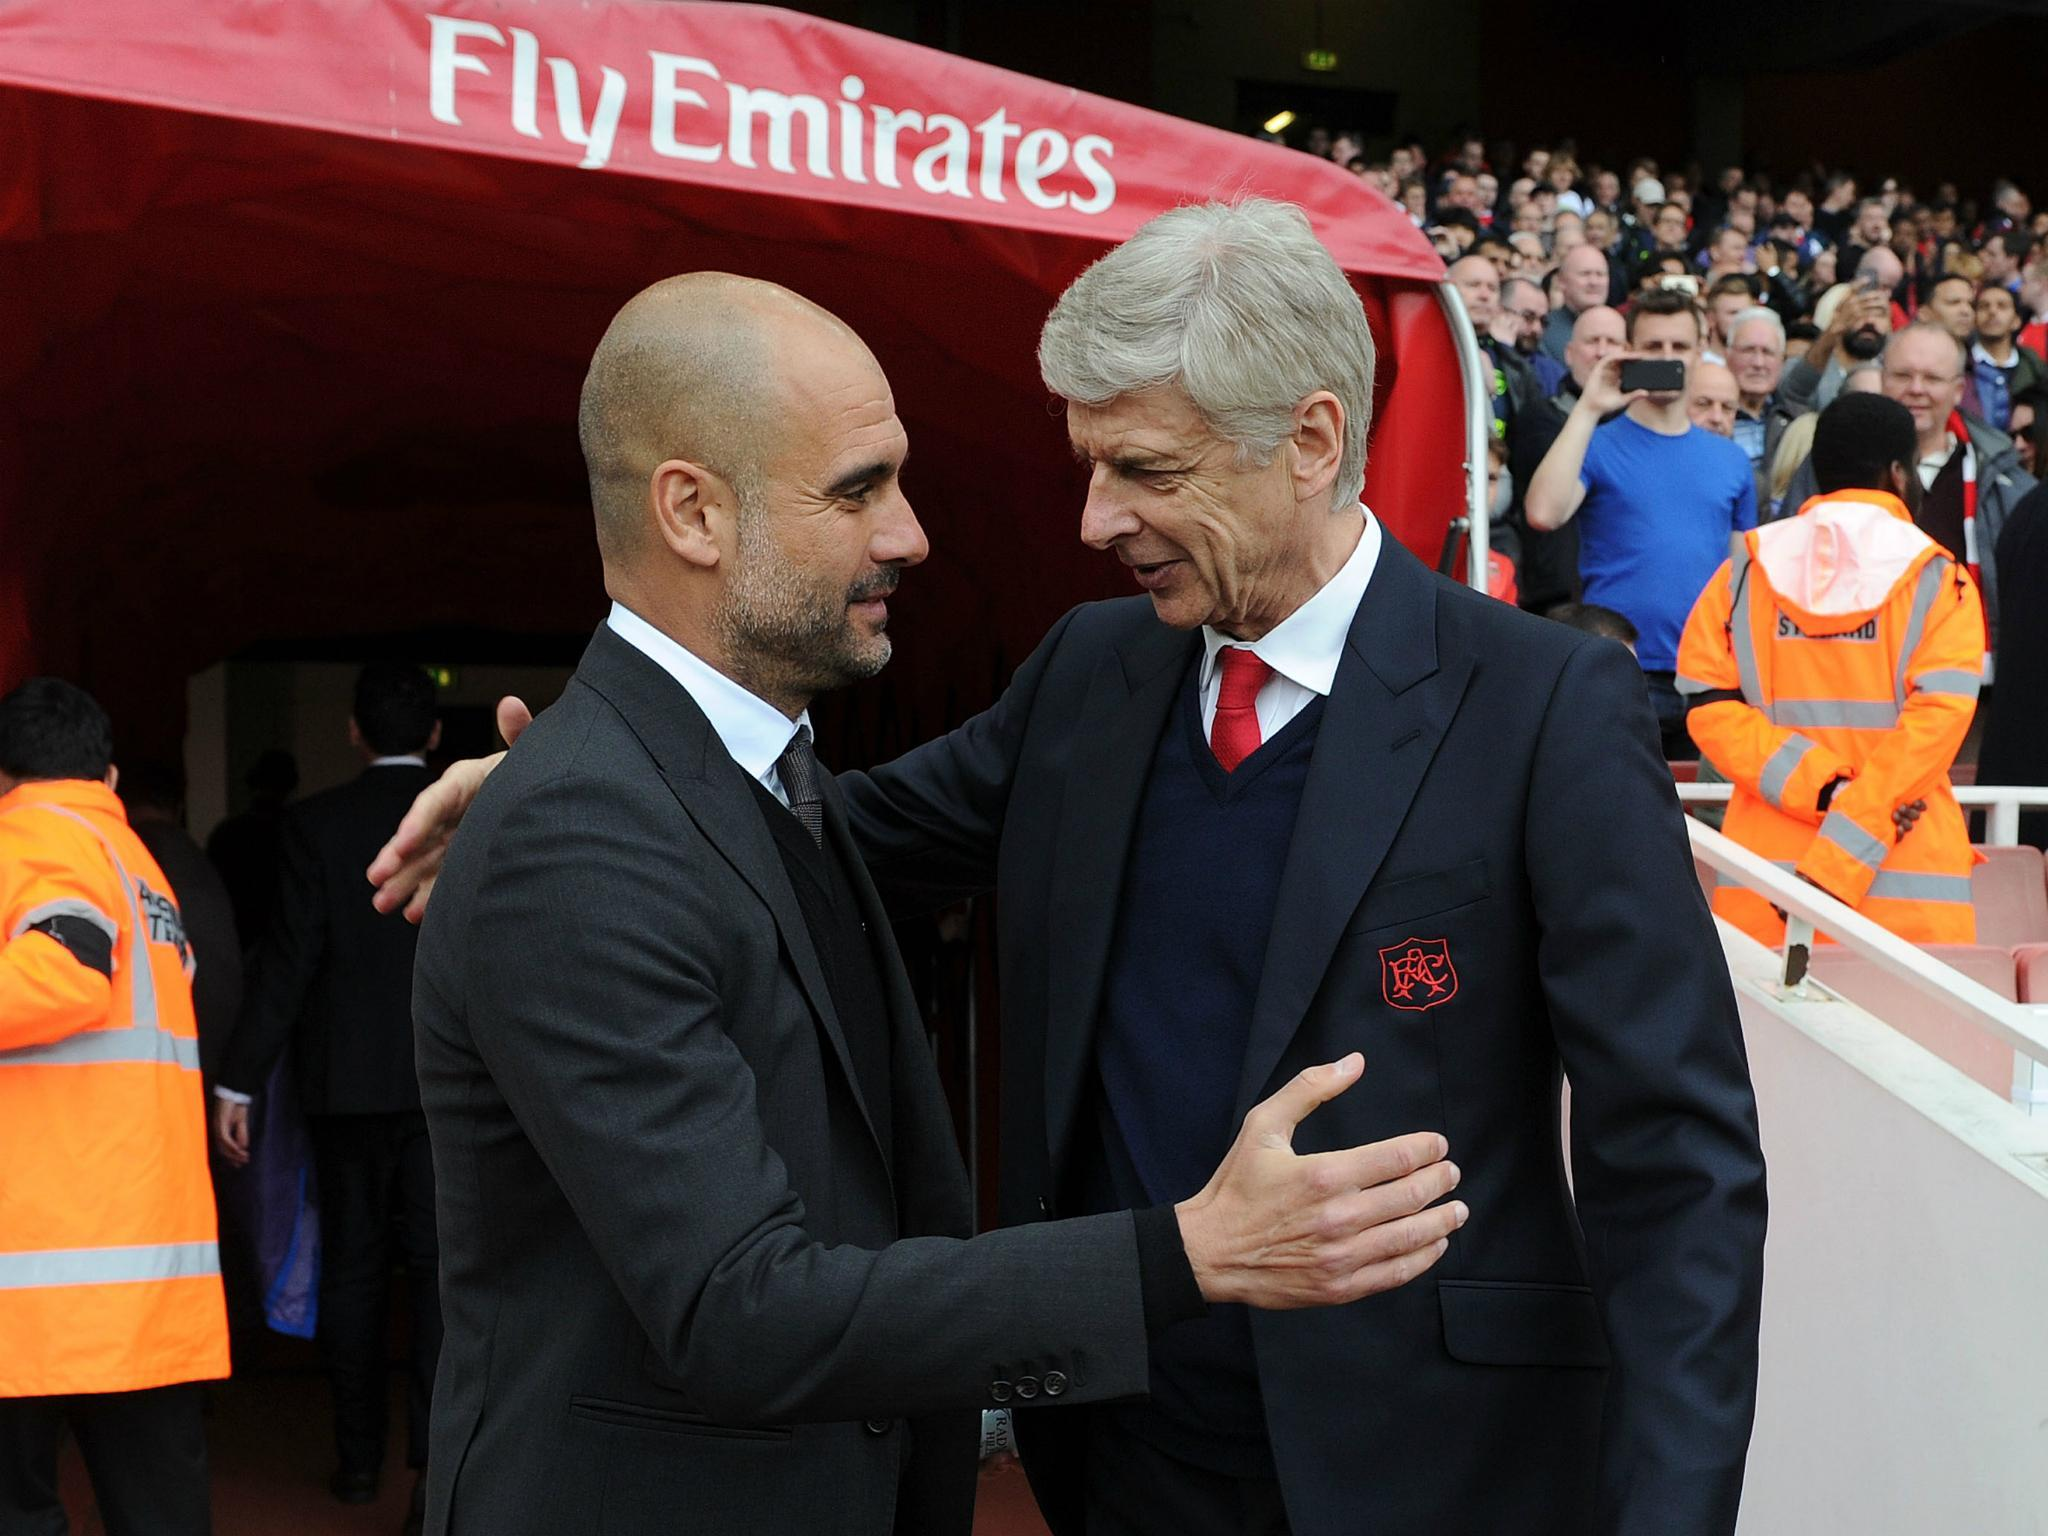 Arsenal vs Manchester City LIVE: What time does it start, what TV channel is it on and where can I watch it?